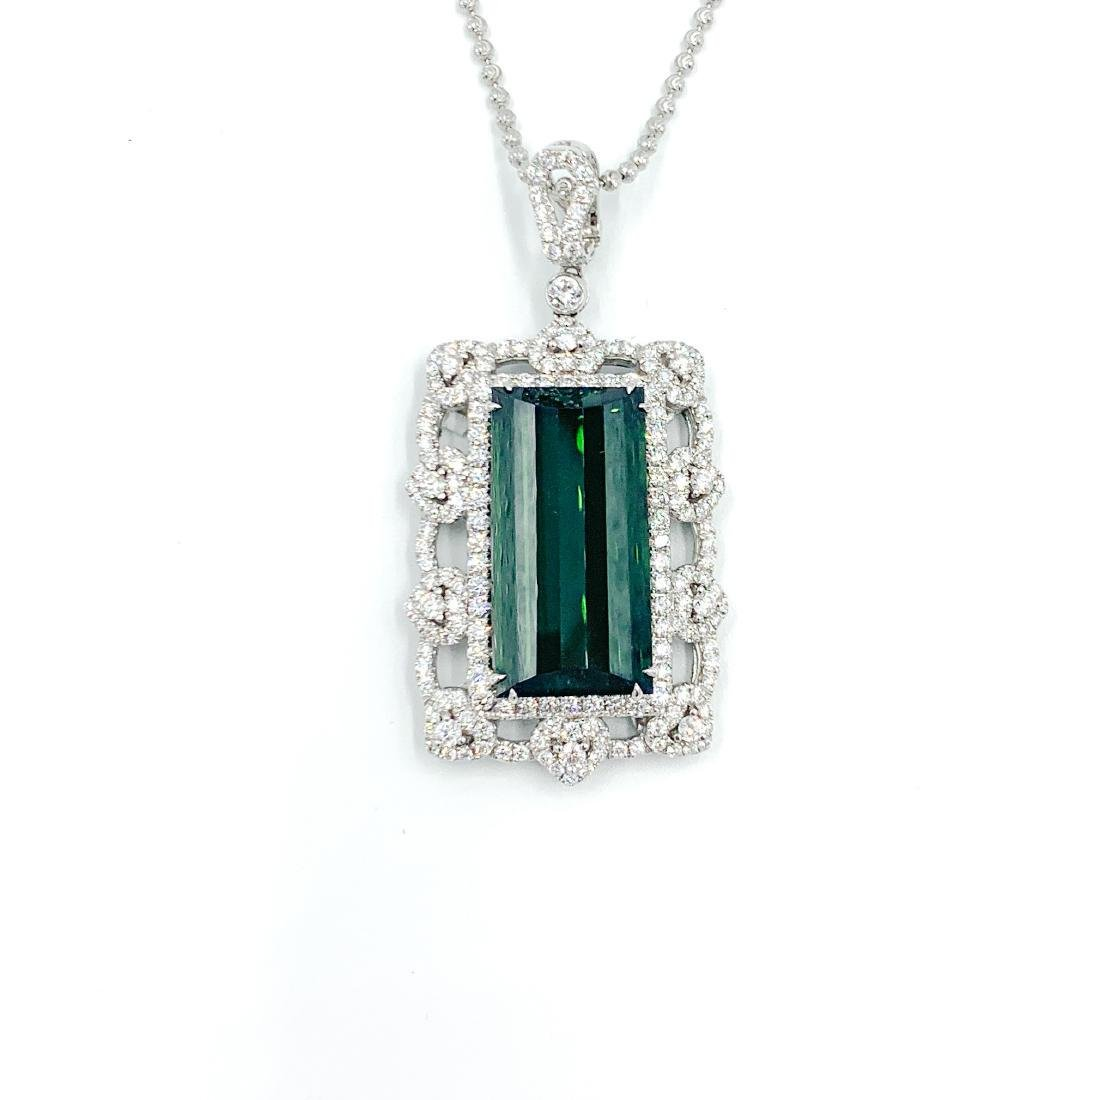 Deep Green Tourmaline Pendant - 2